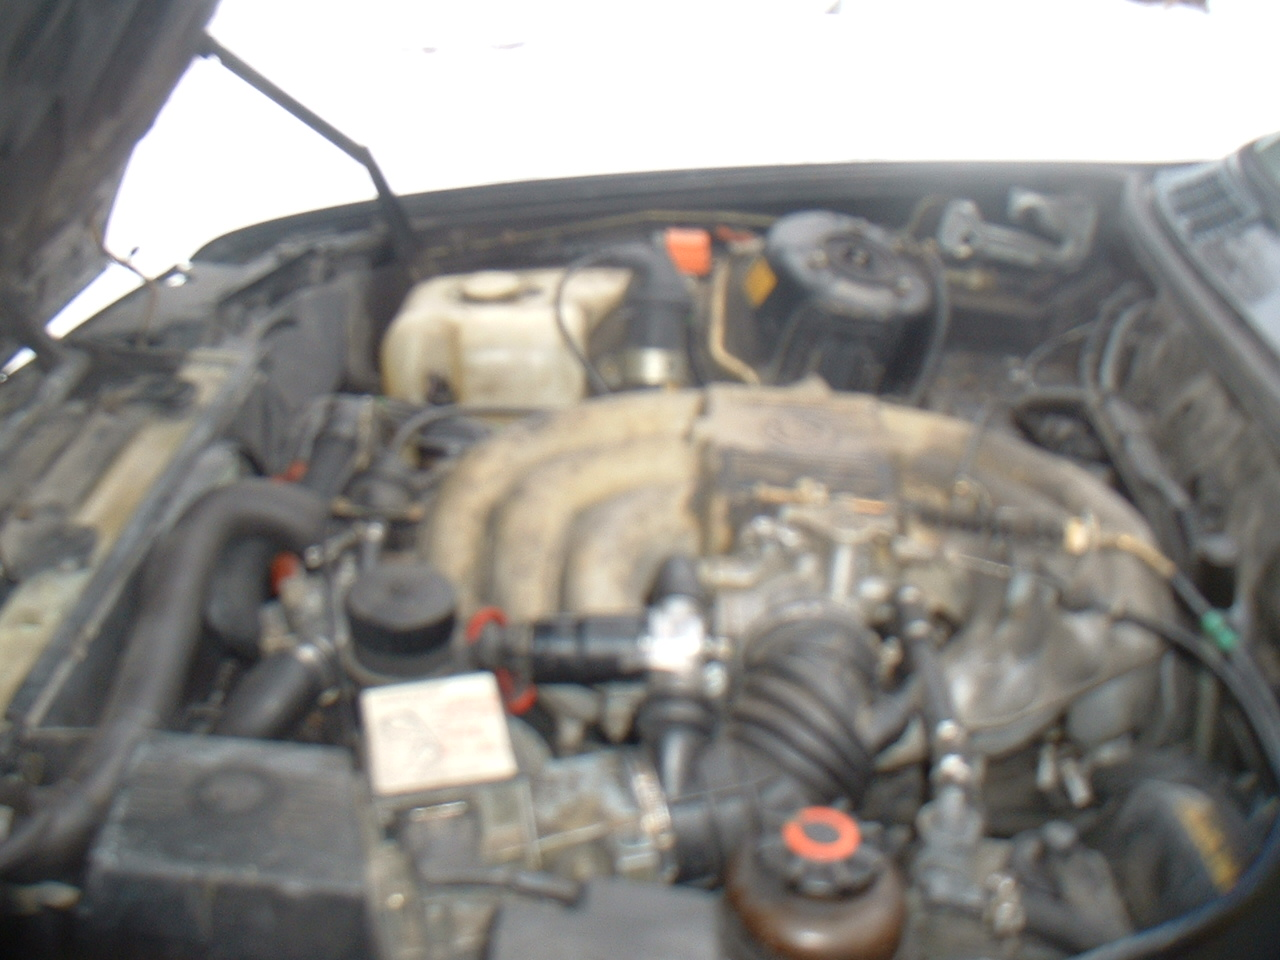 Iratic Idle Problem: I Have a 1989 Bmw That Idle Very Iratic